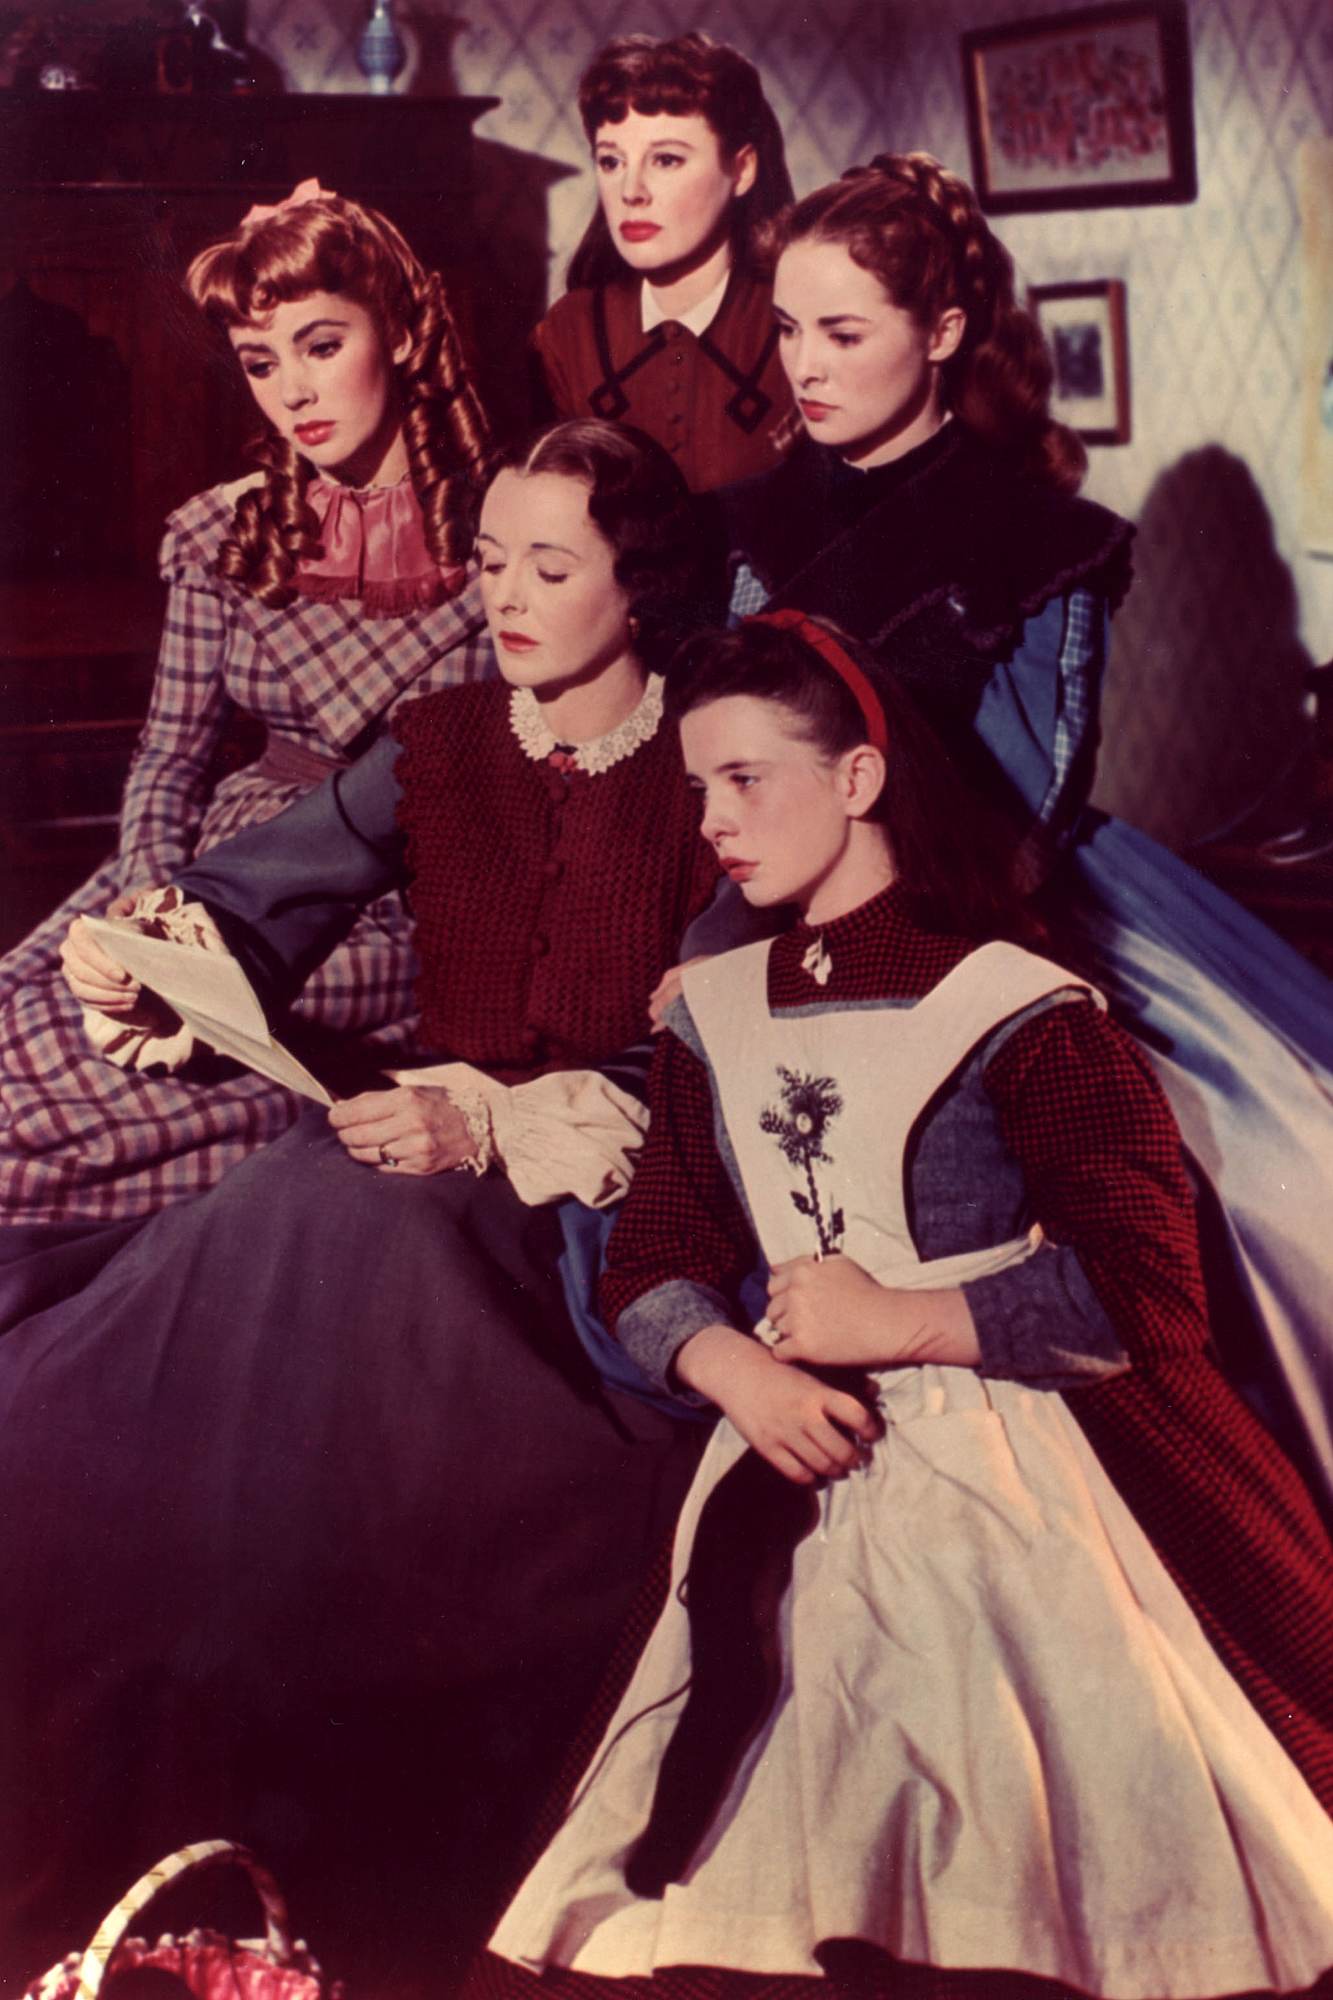 5. Little Women (1949 movie)